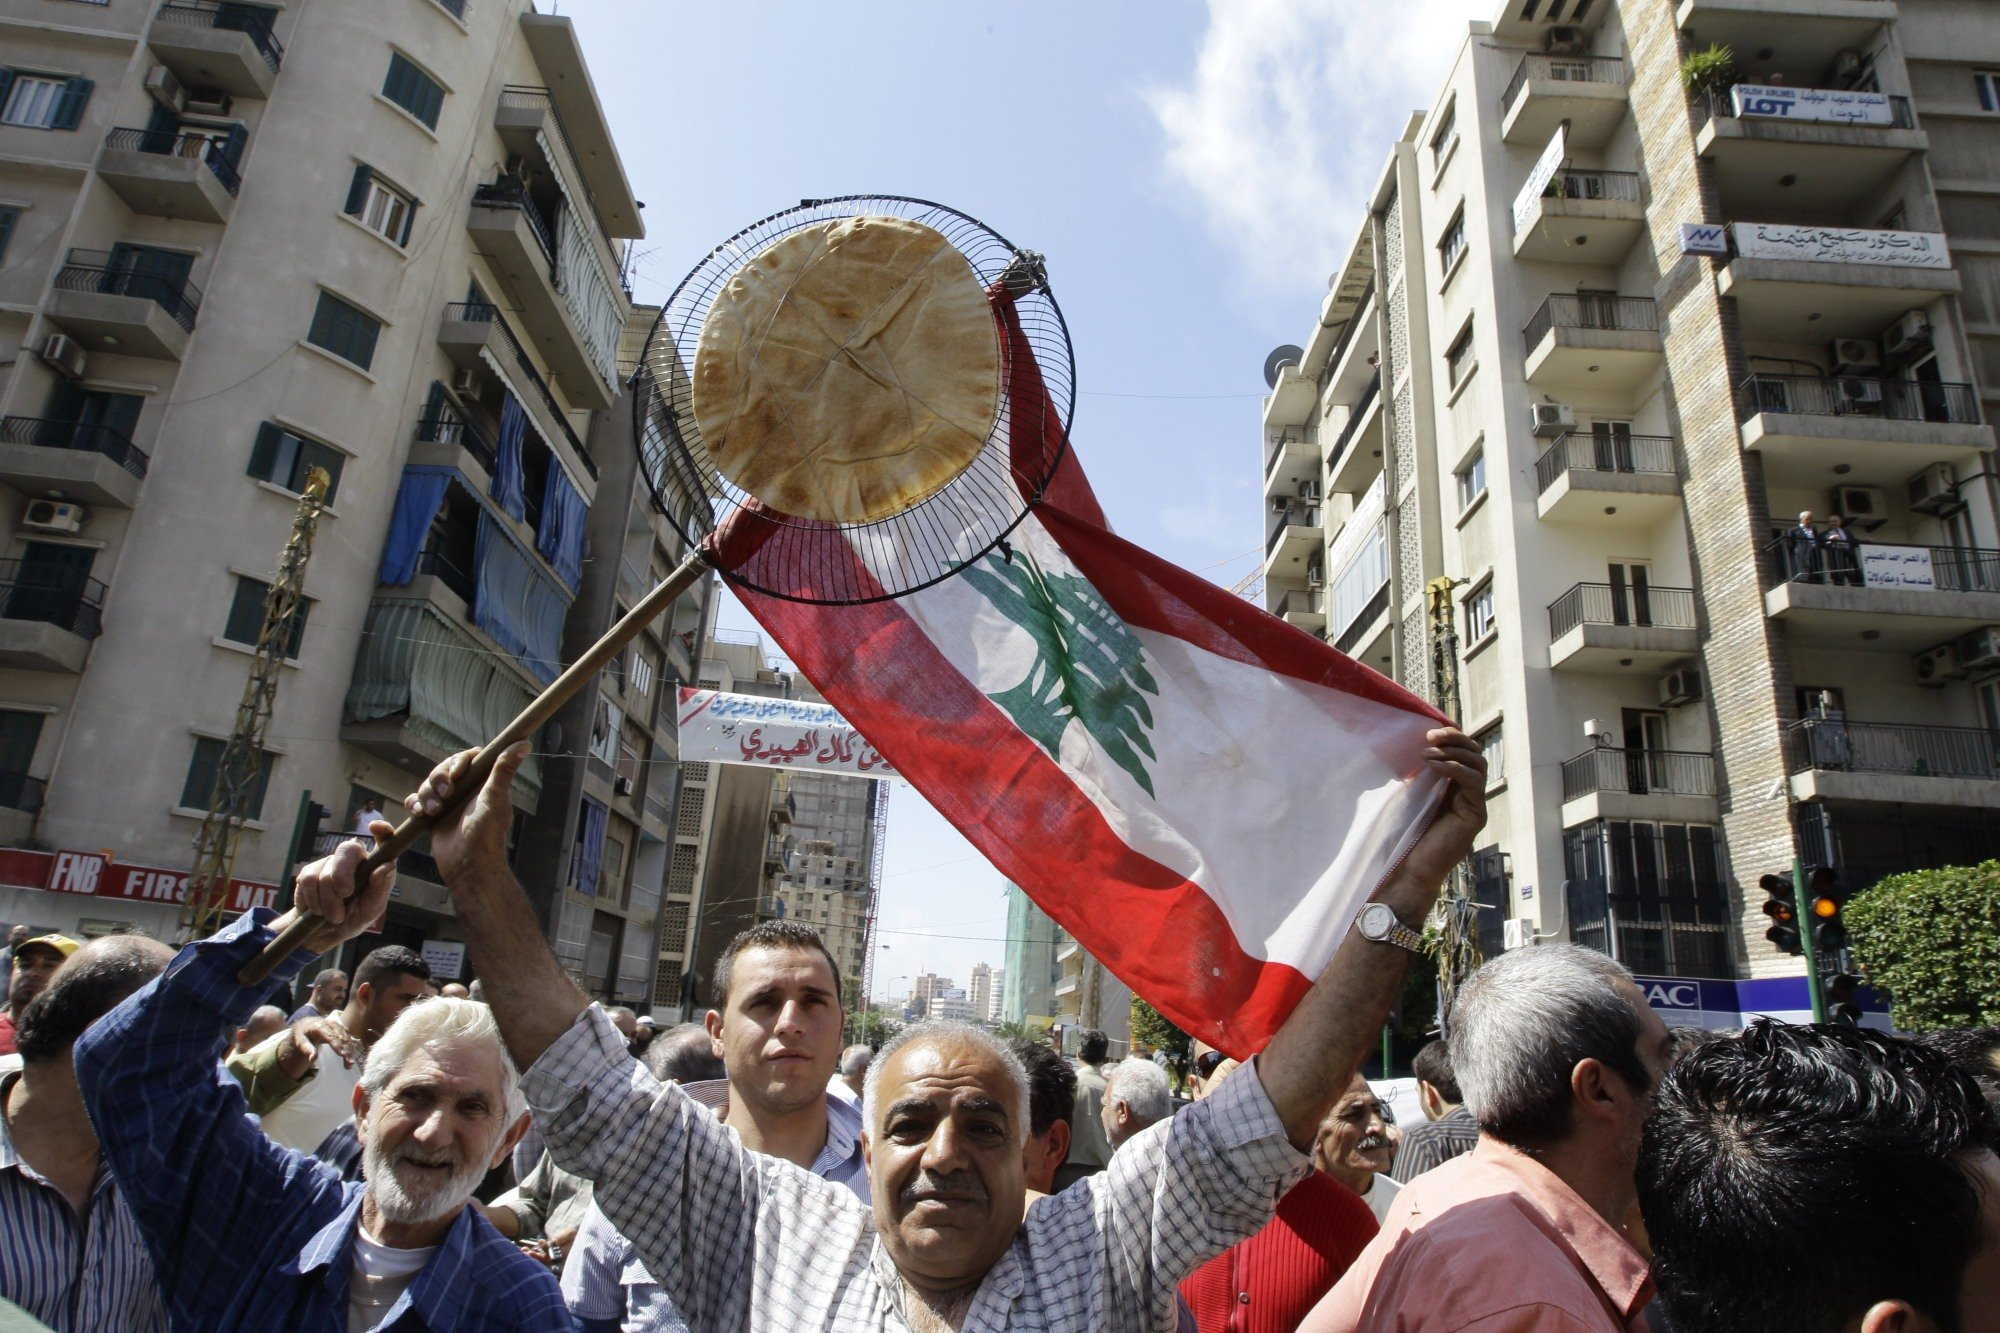 Lebanese bus and taxi drivers carry a Lebanese flag and a flatbread during an April 2010 rally in Beirut protesting fuel prices (AFP)